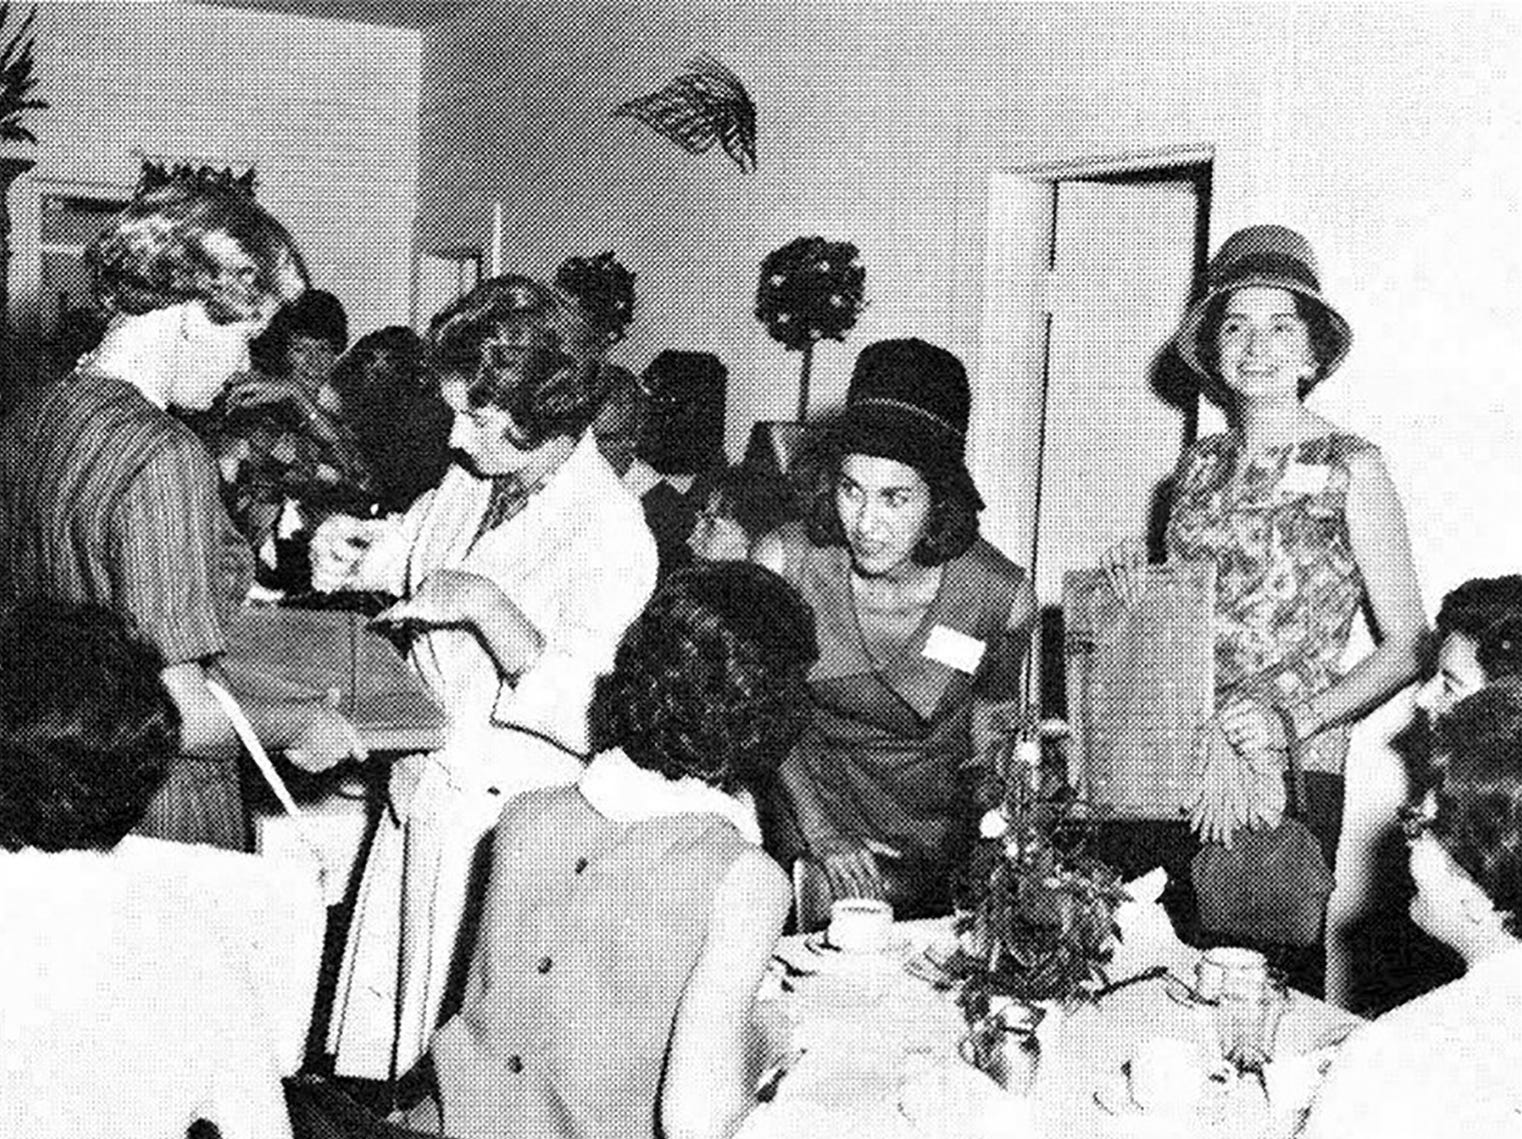 Hattie Gilmore, right, with other wives married to executives of Vitro Corp. of America. The southern tip of Marco Island's beach spent years during the Cold War as a missile tracking station administered by the Air Force. Photo courtesy of Randy Gilmore